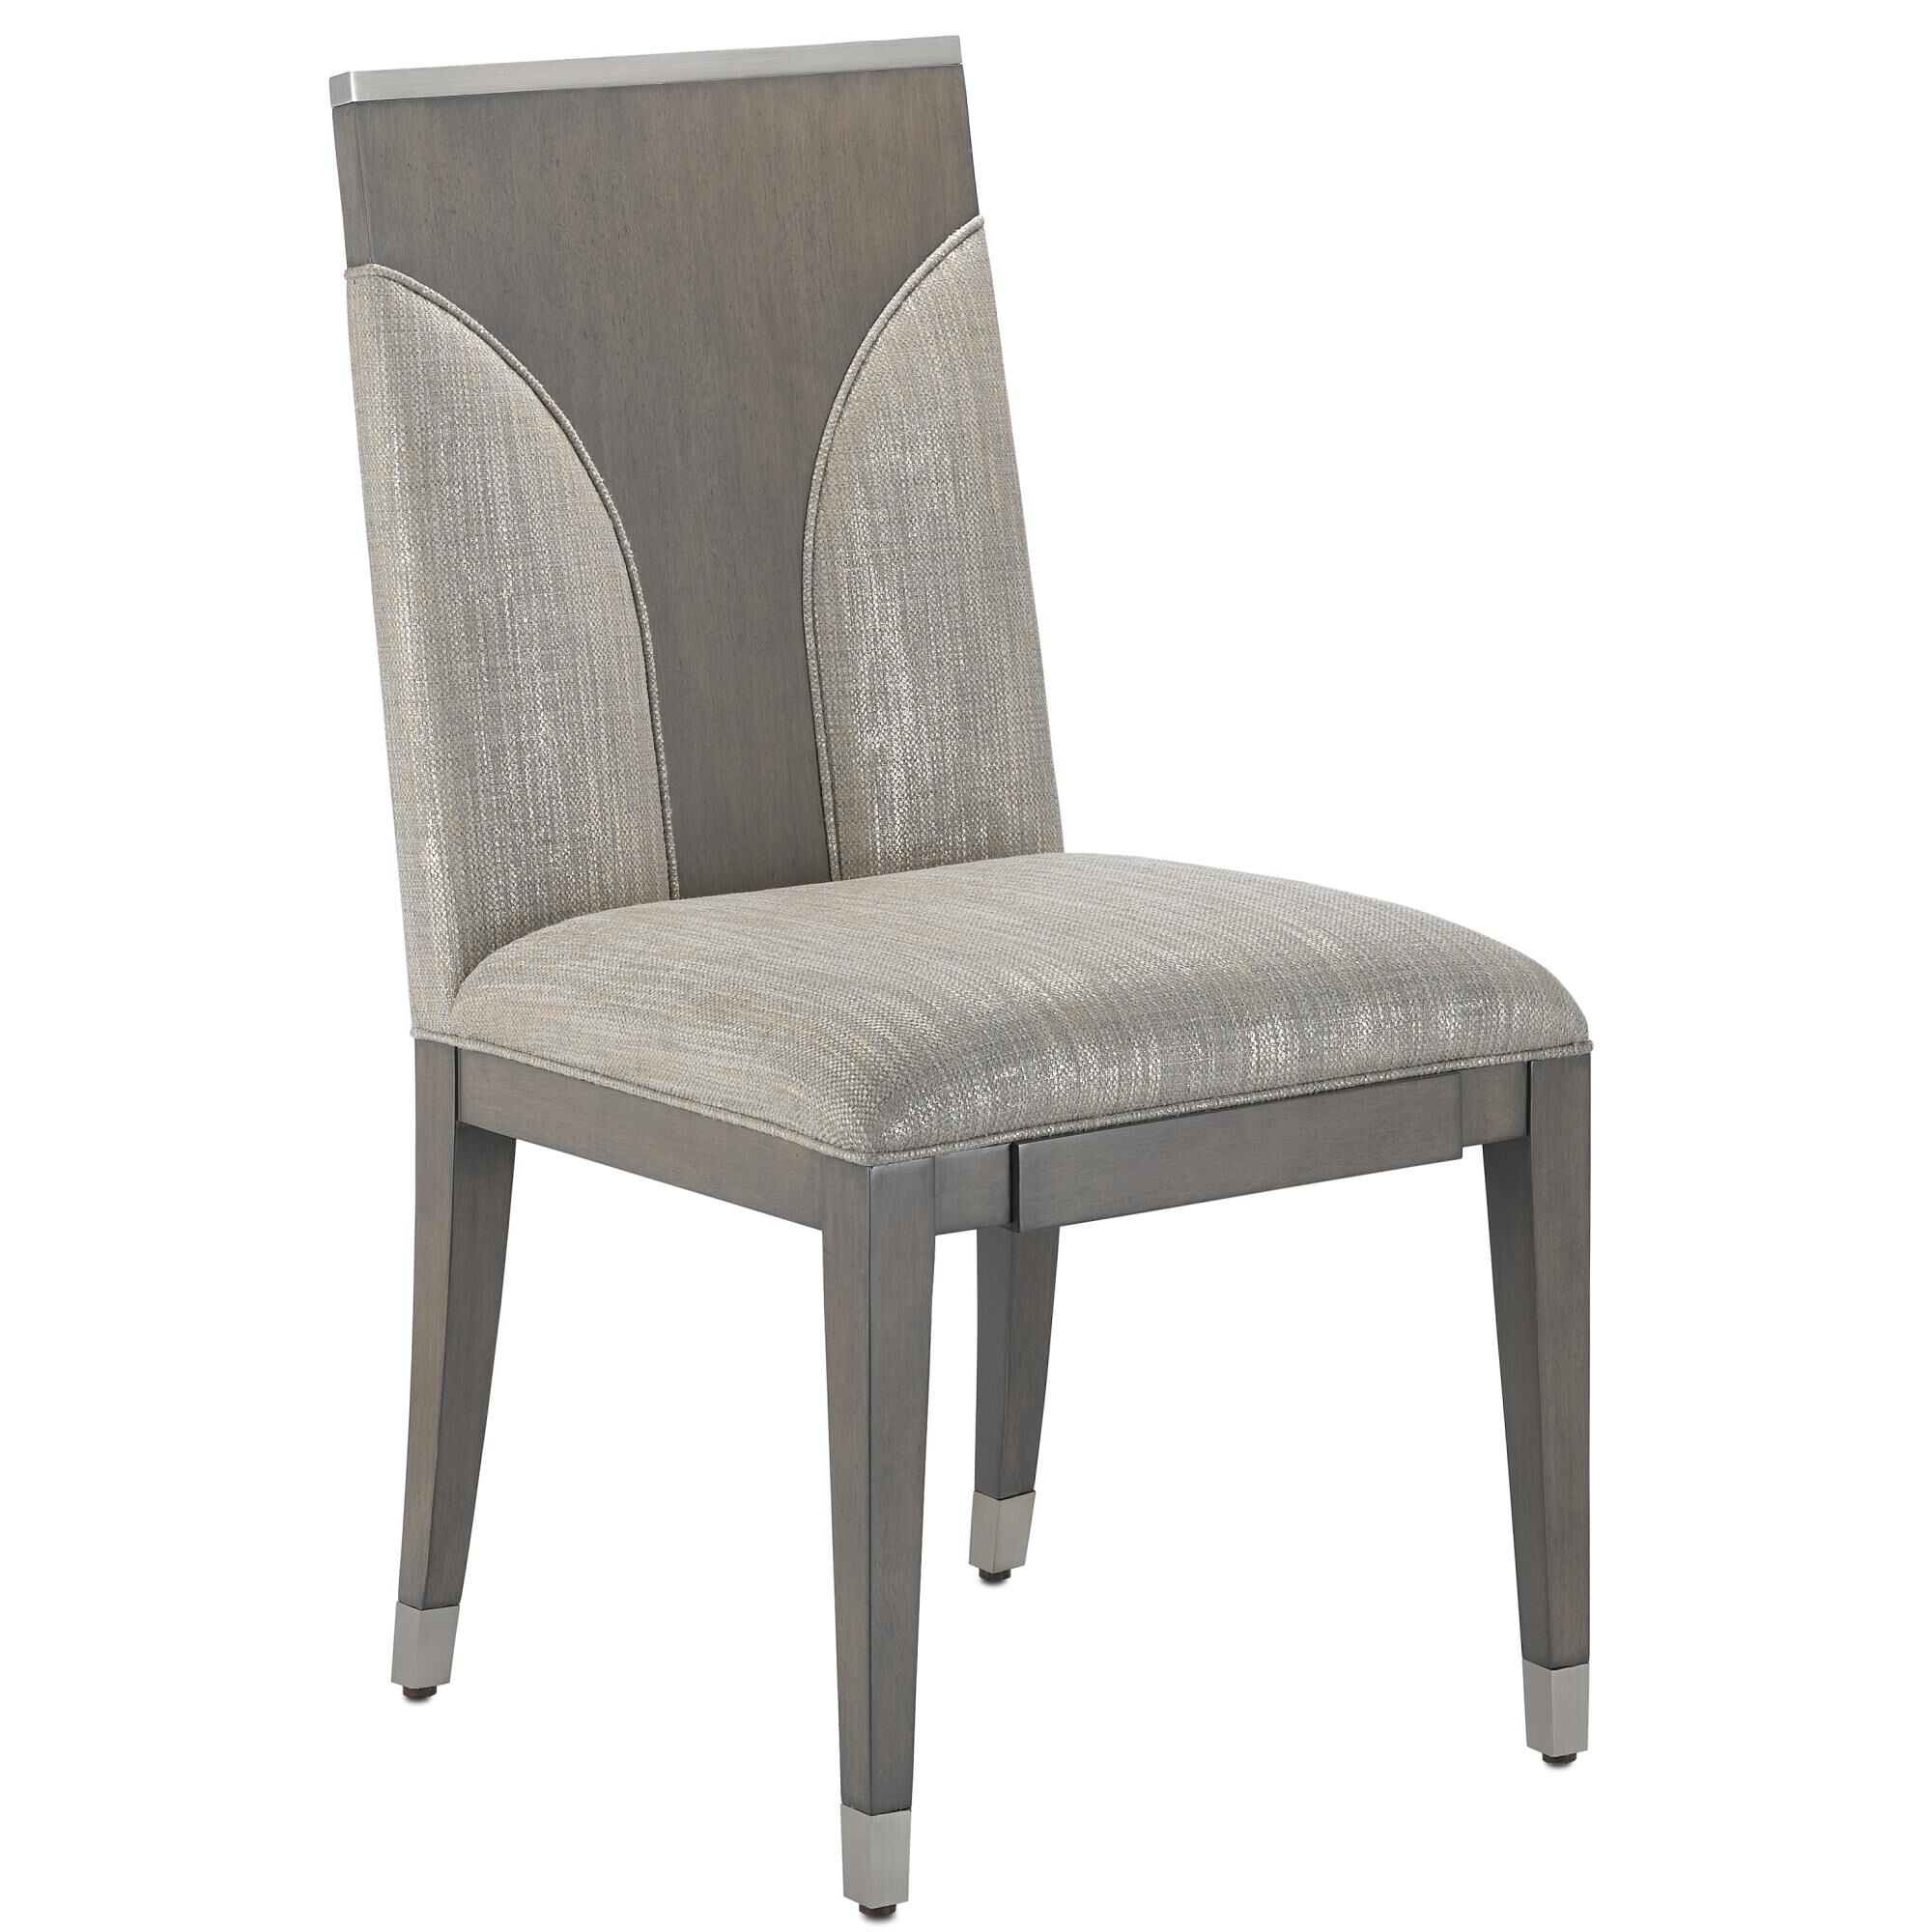 Currey and Company Mirra Dining Chair Mirra - 7000-0212 - Mid-Century Modern